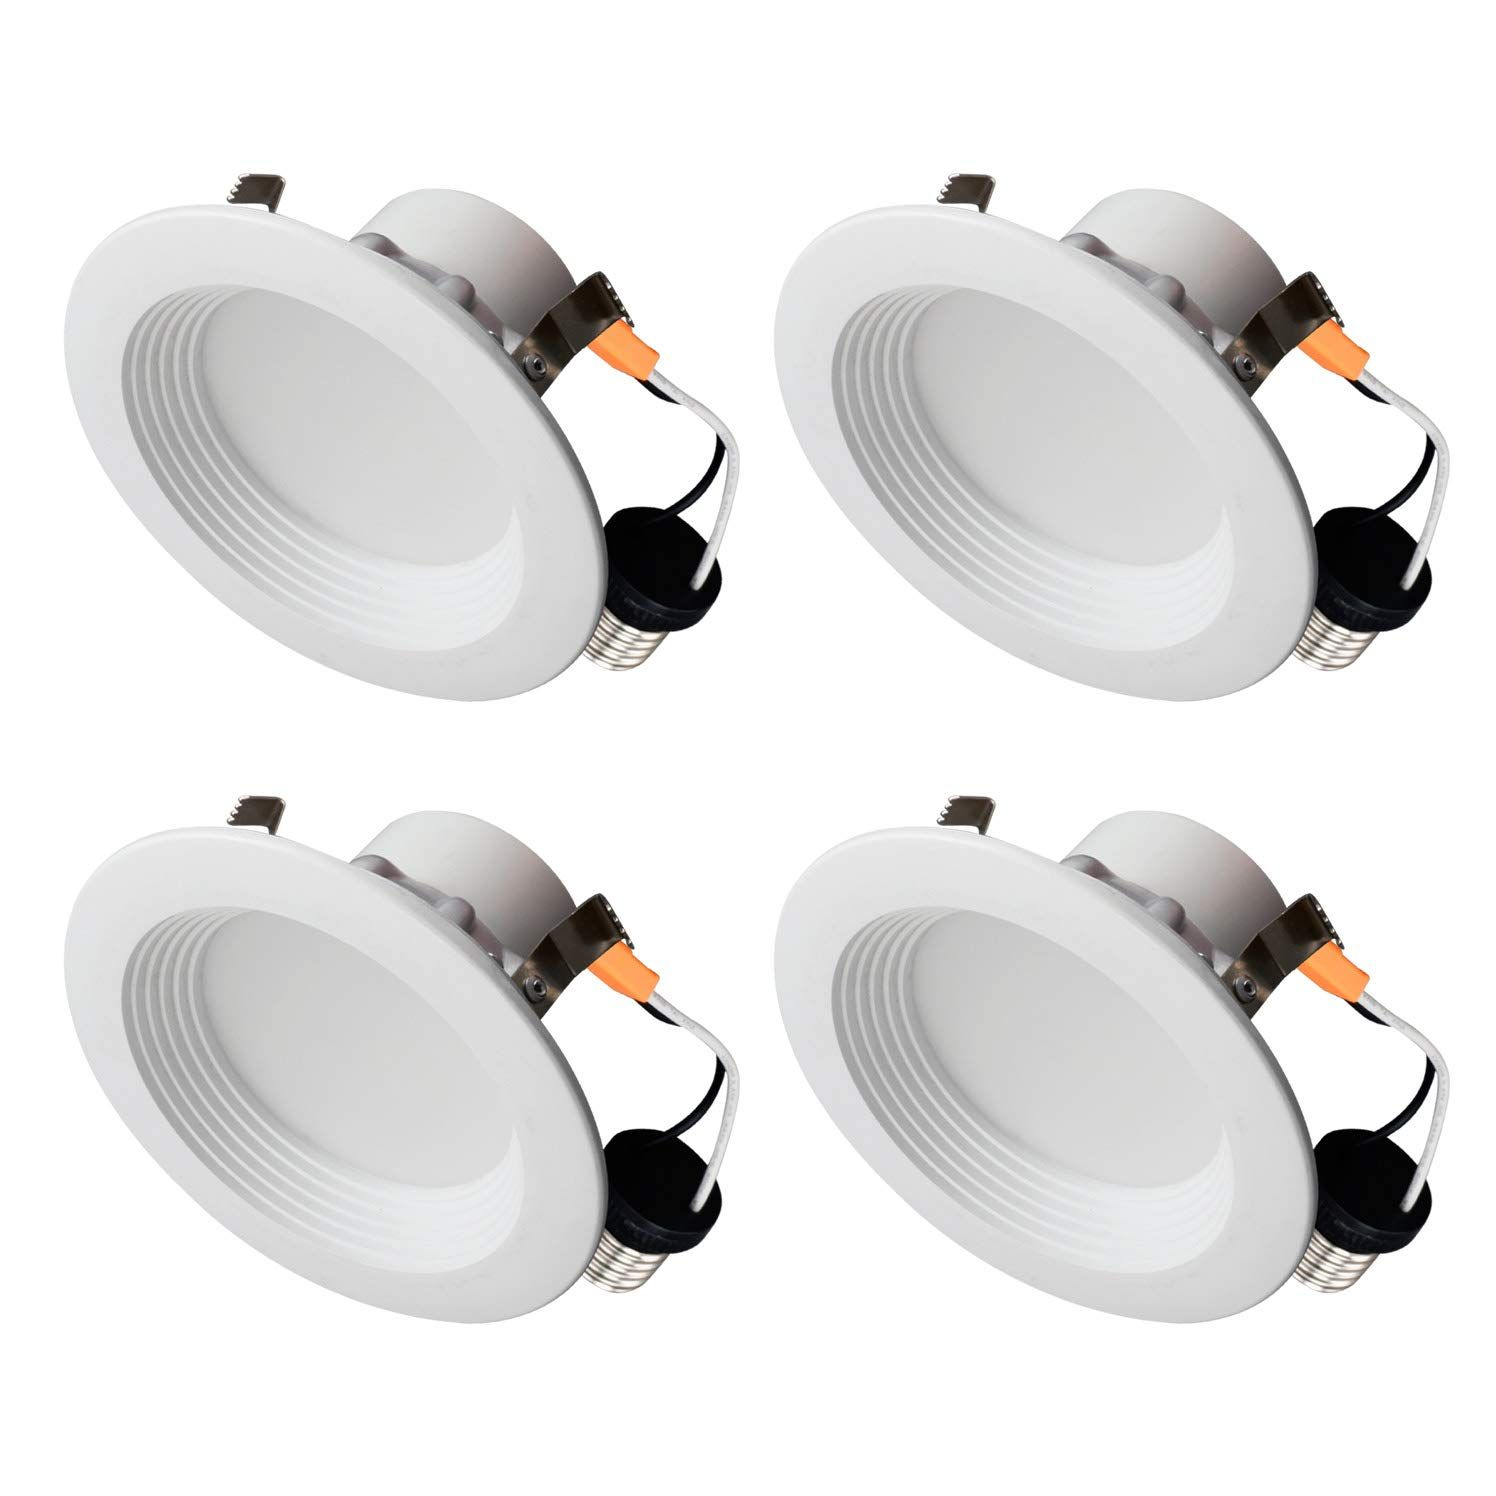 Ostwin 4 Pack 4 Inch Dimmable Round Led Baffle Downlight Recessed Retrofit Kit Lighting Fixture Le 2020 Ceiling Can Lights Can Lights Recessed Lighting